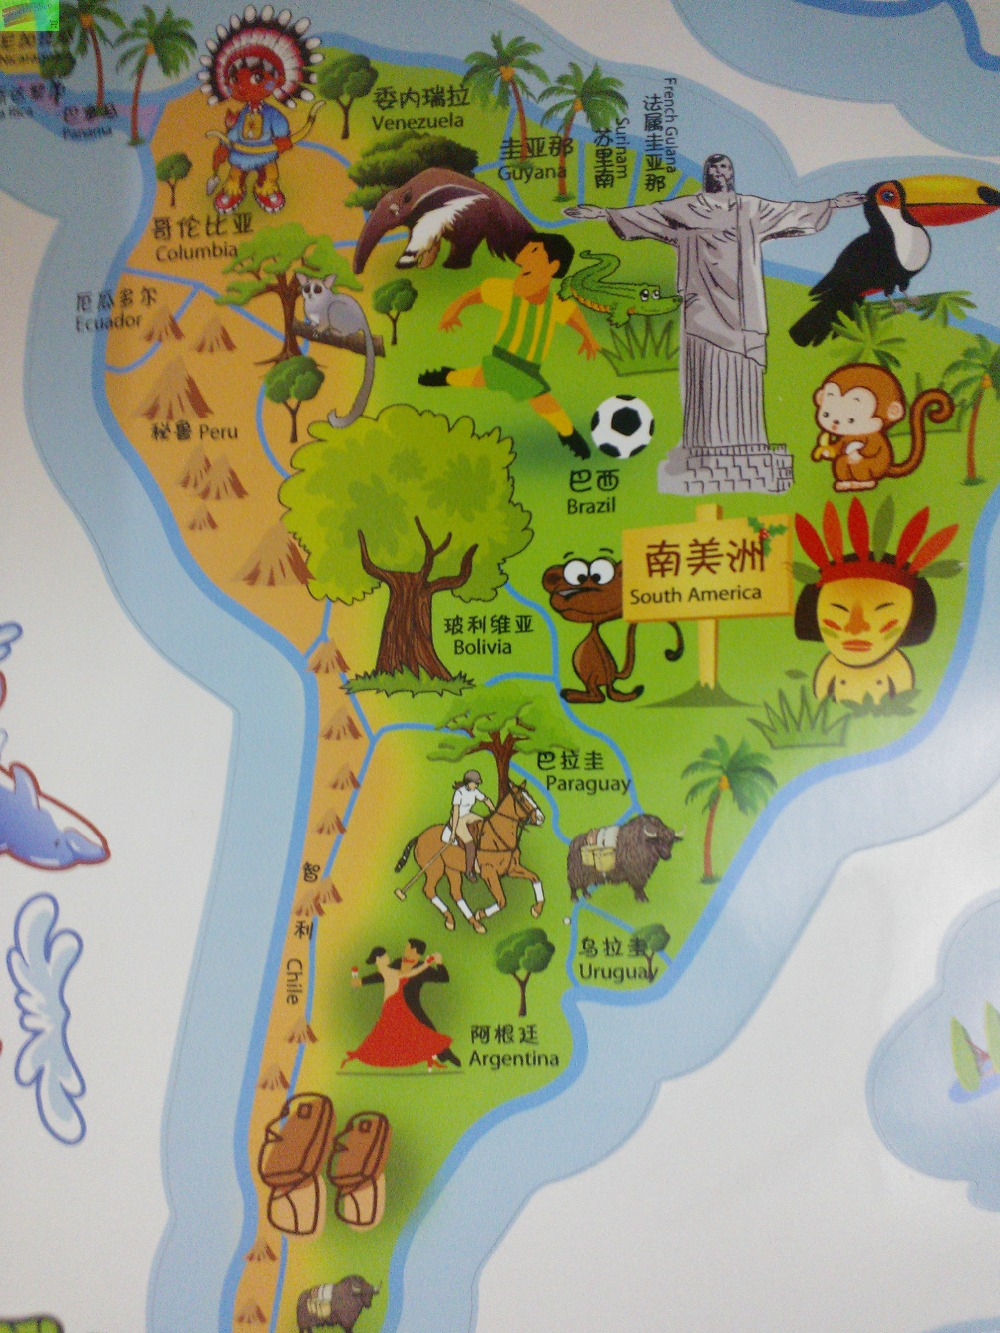 Large cartoon world map wall stickers for kids room cosplay large cartoon world map wall stickers for kids room cosplay property children wallpaper decoration wallpaper for kids bedroom in costume props from novelty gumiabroncs Choice Image